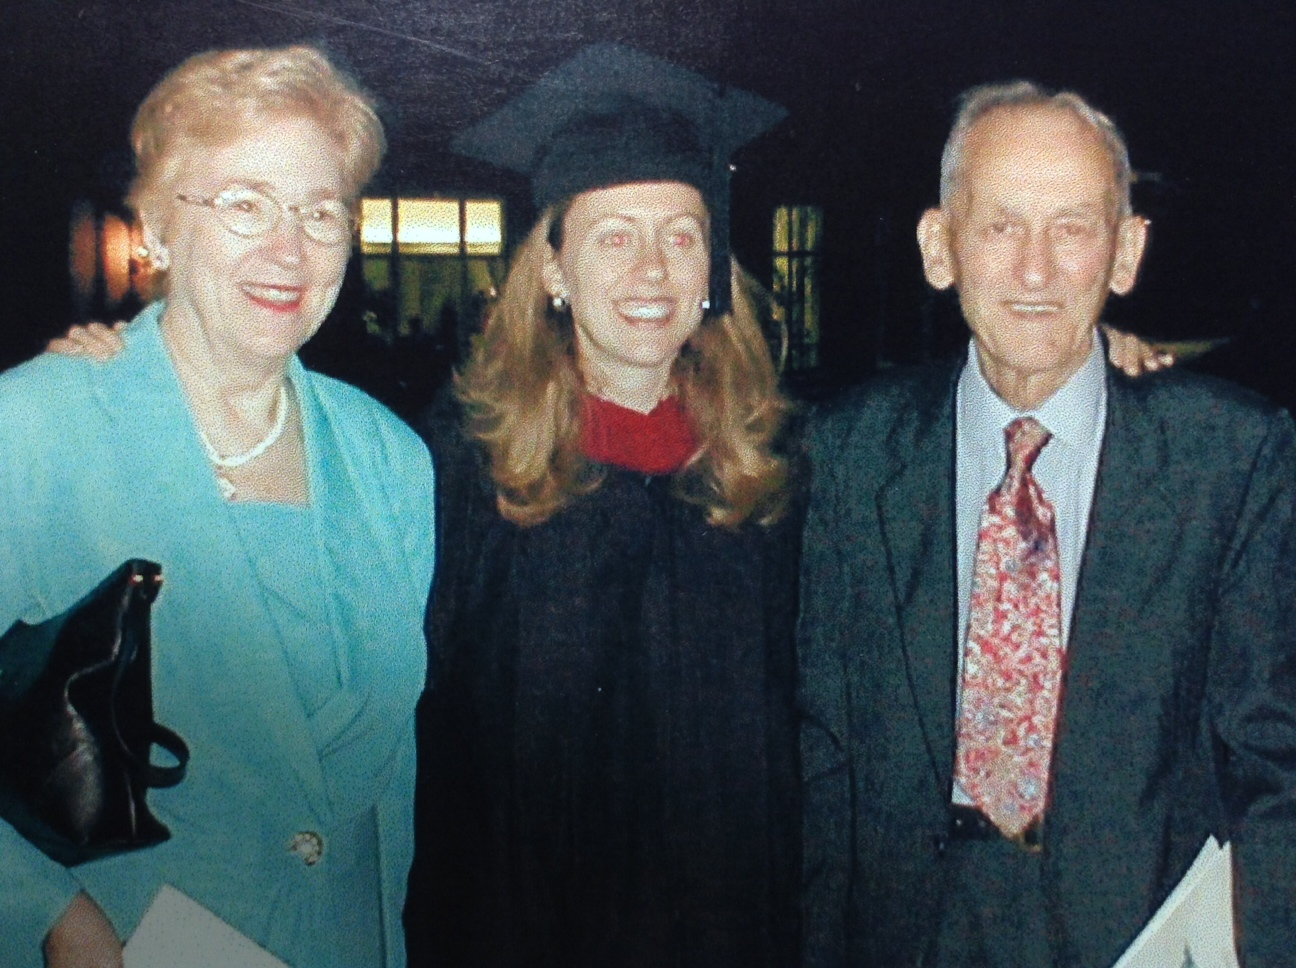 Dr Natalie Eastman, pictured here with her parents on the day she graduated with her PhD. Her father passed away the fall after seeing his daughter graduate.